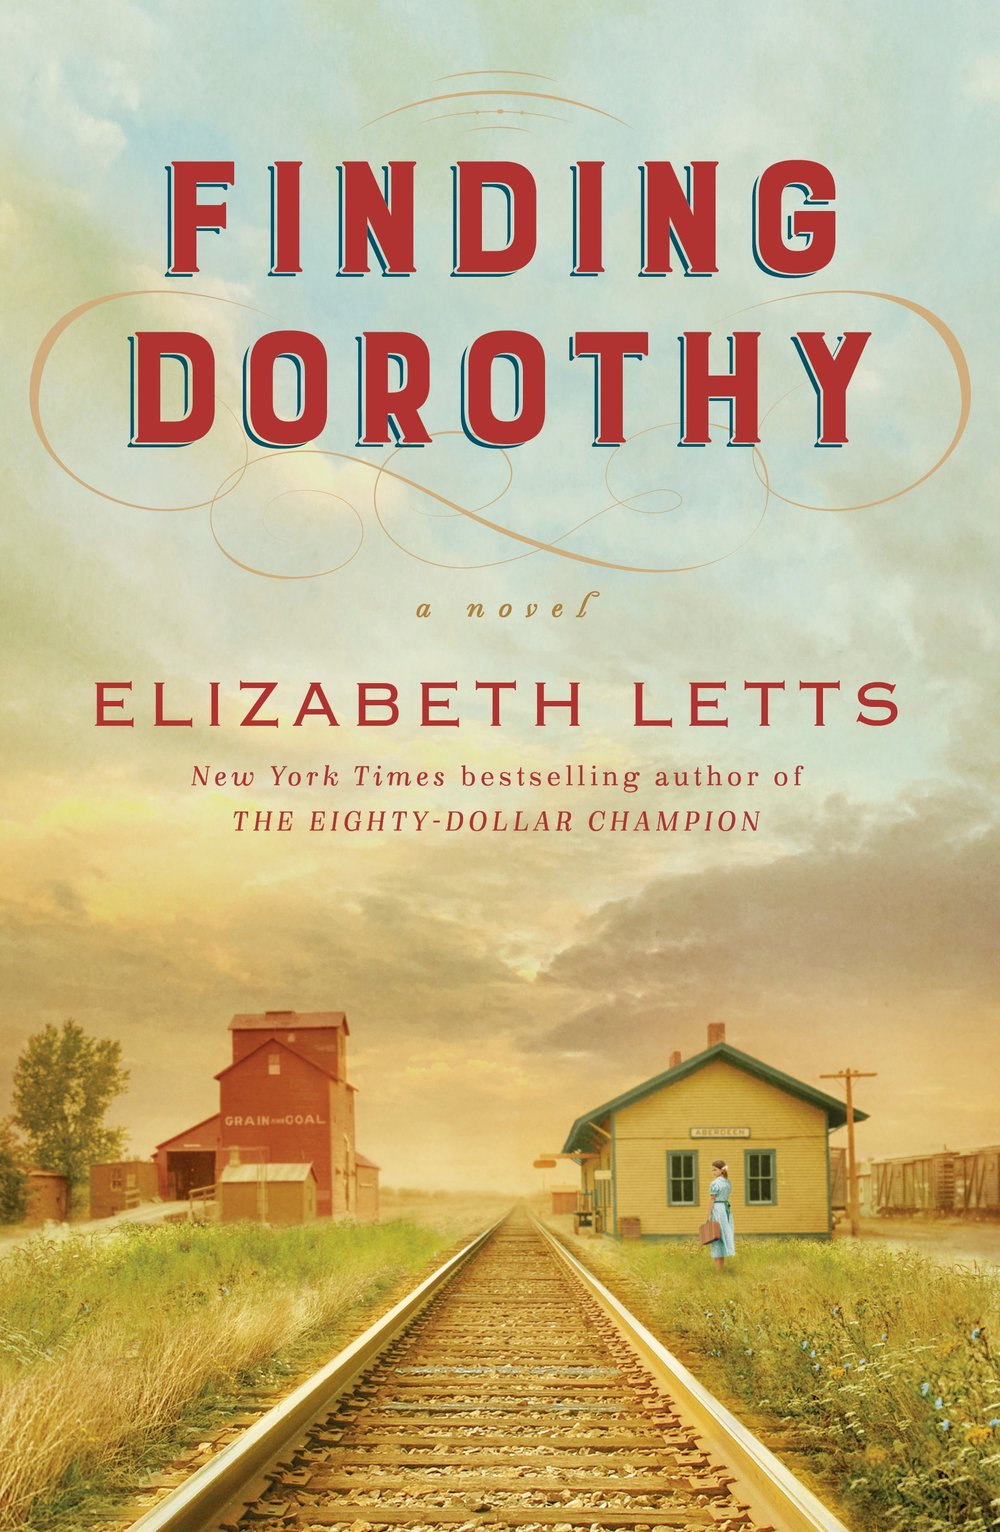 finding dorothy by elizabeth letts.jpg